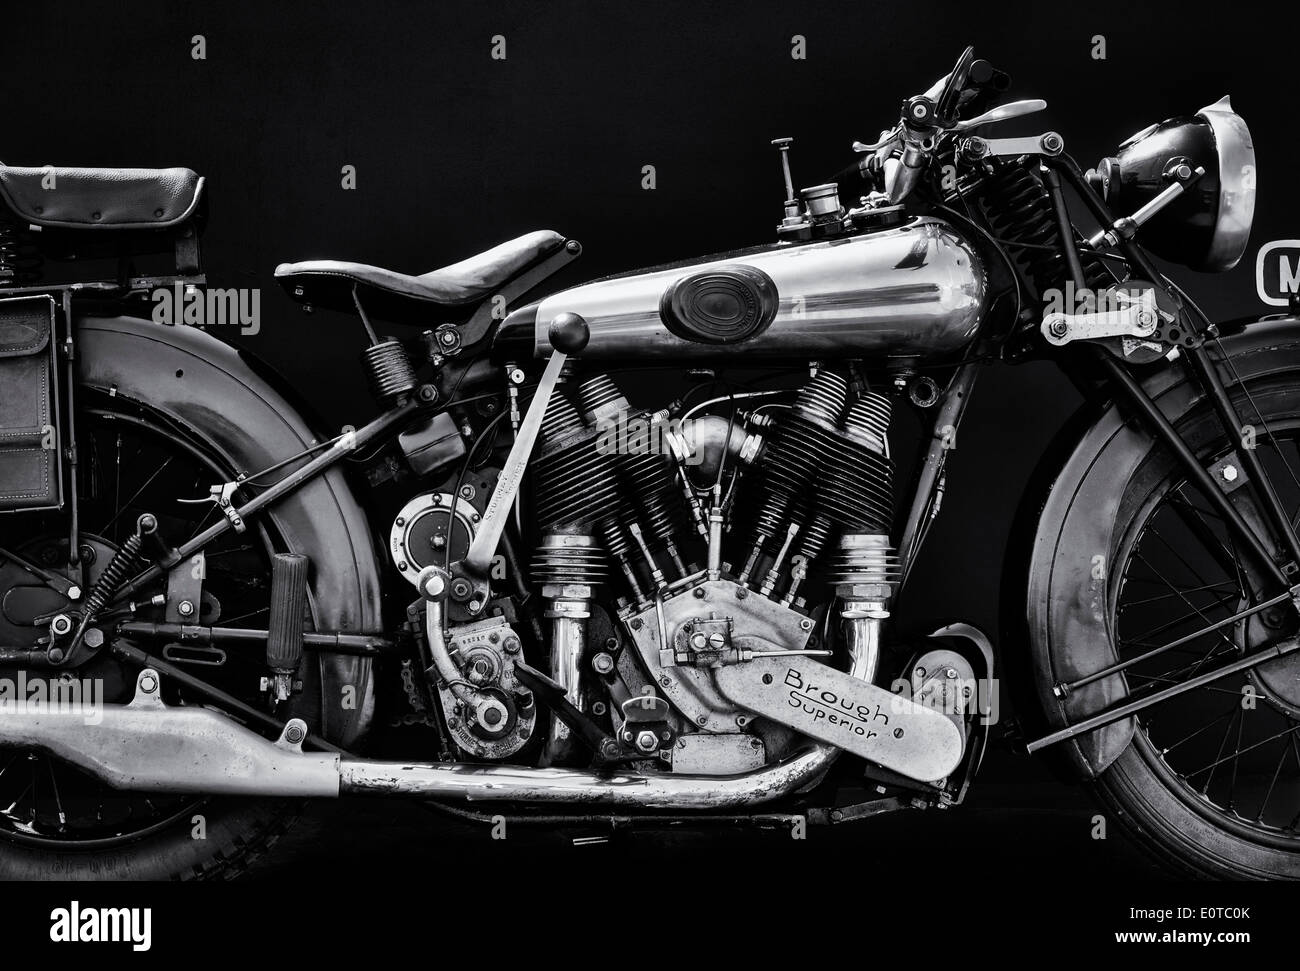 Motorcycle Black And White Stockfotos Motorcycle Black And